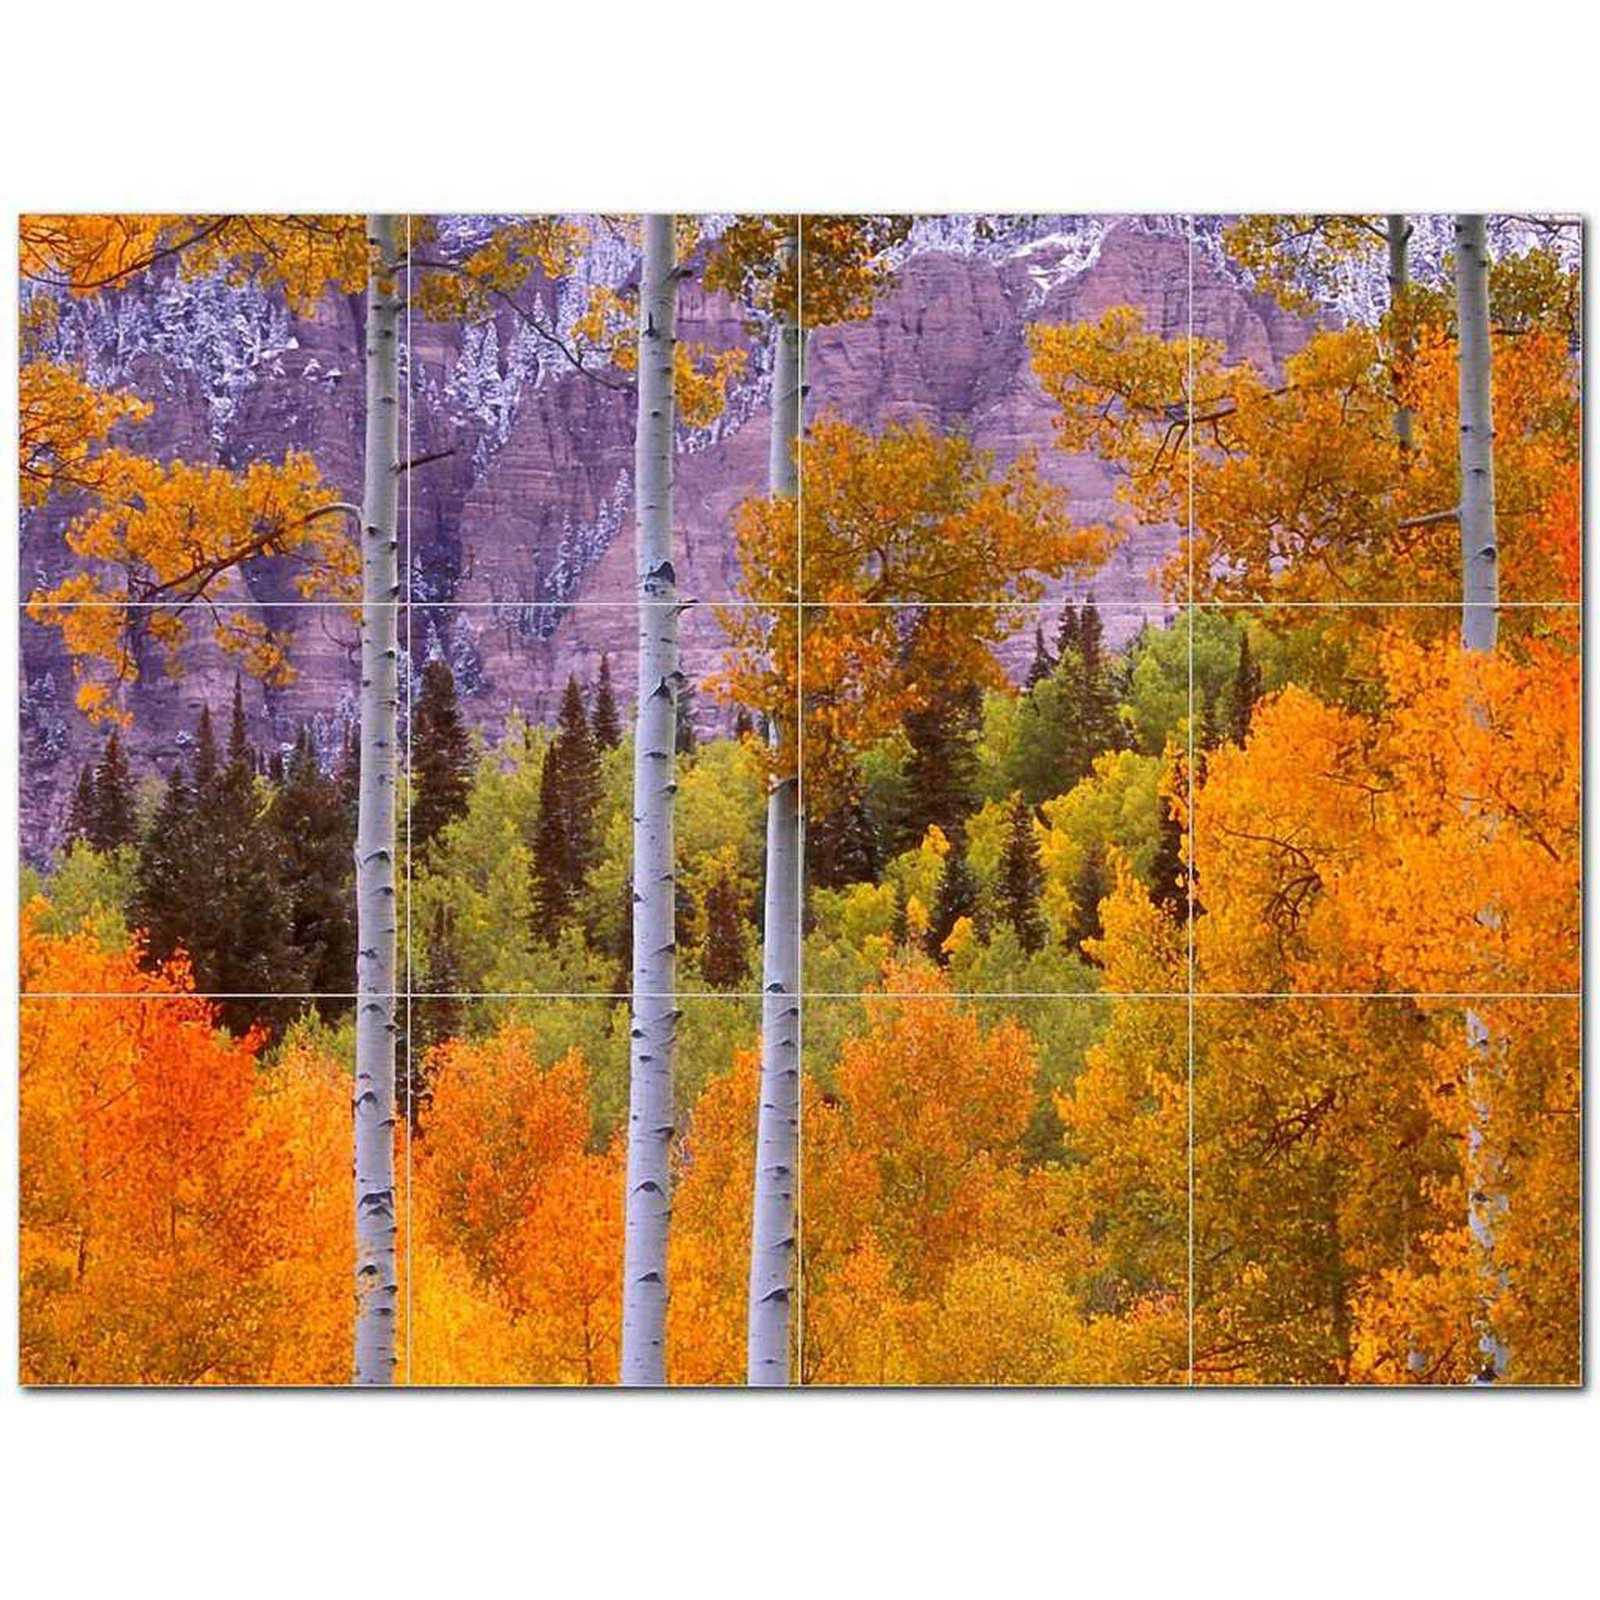 Primary image for Trees Leaves Ceramic Tile Mural Kitchen Backsplash Bathroom Shower BAZ406055